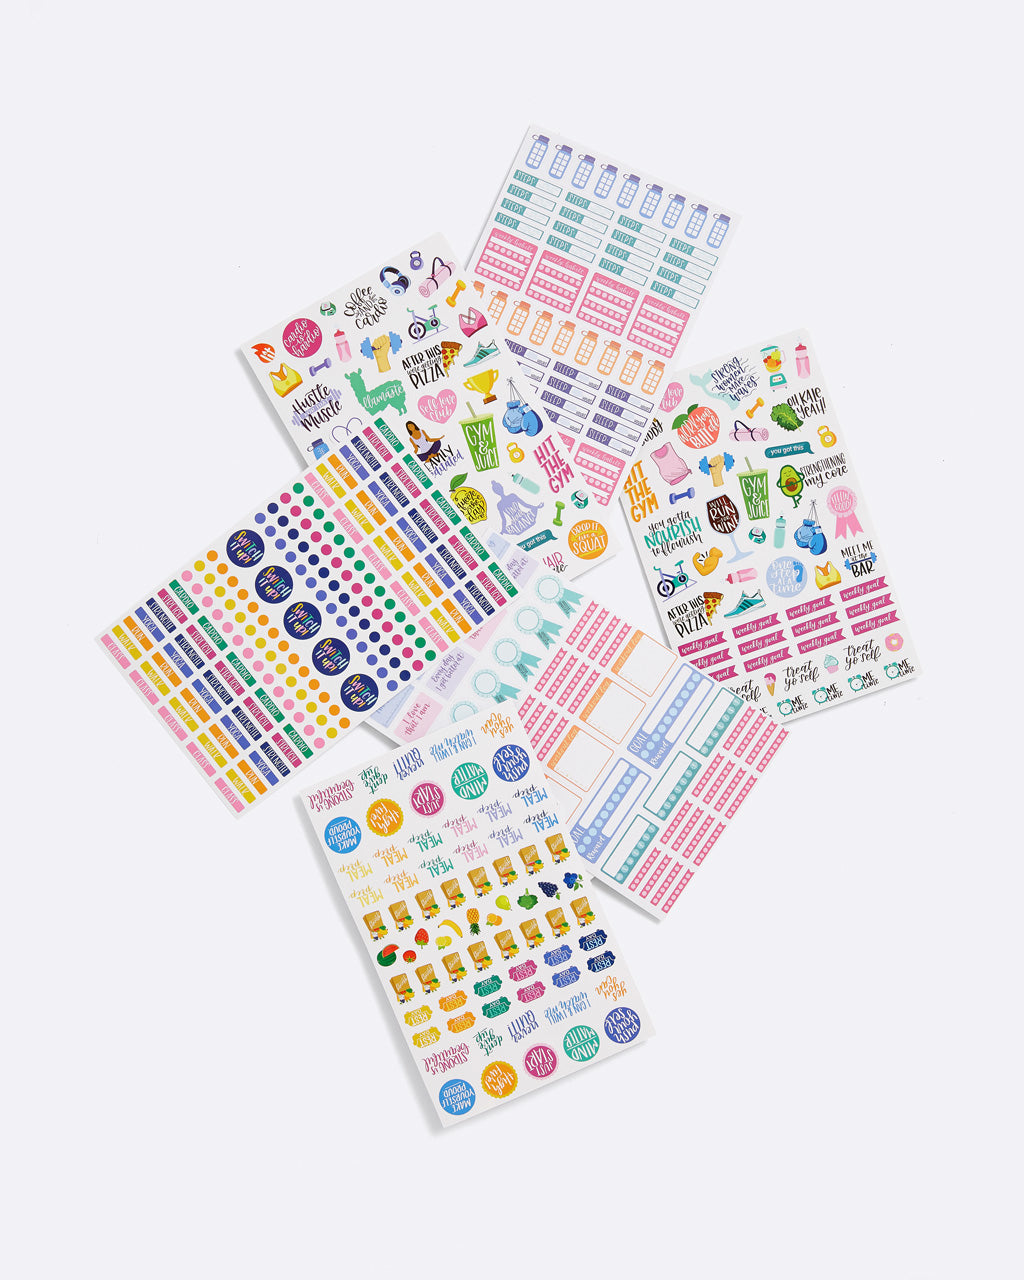 6 sheets of assorted stickers, colors and shapes